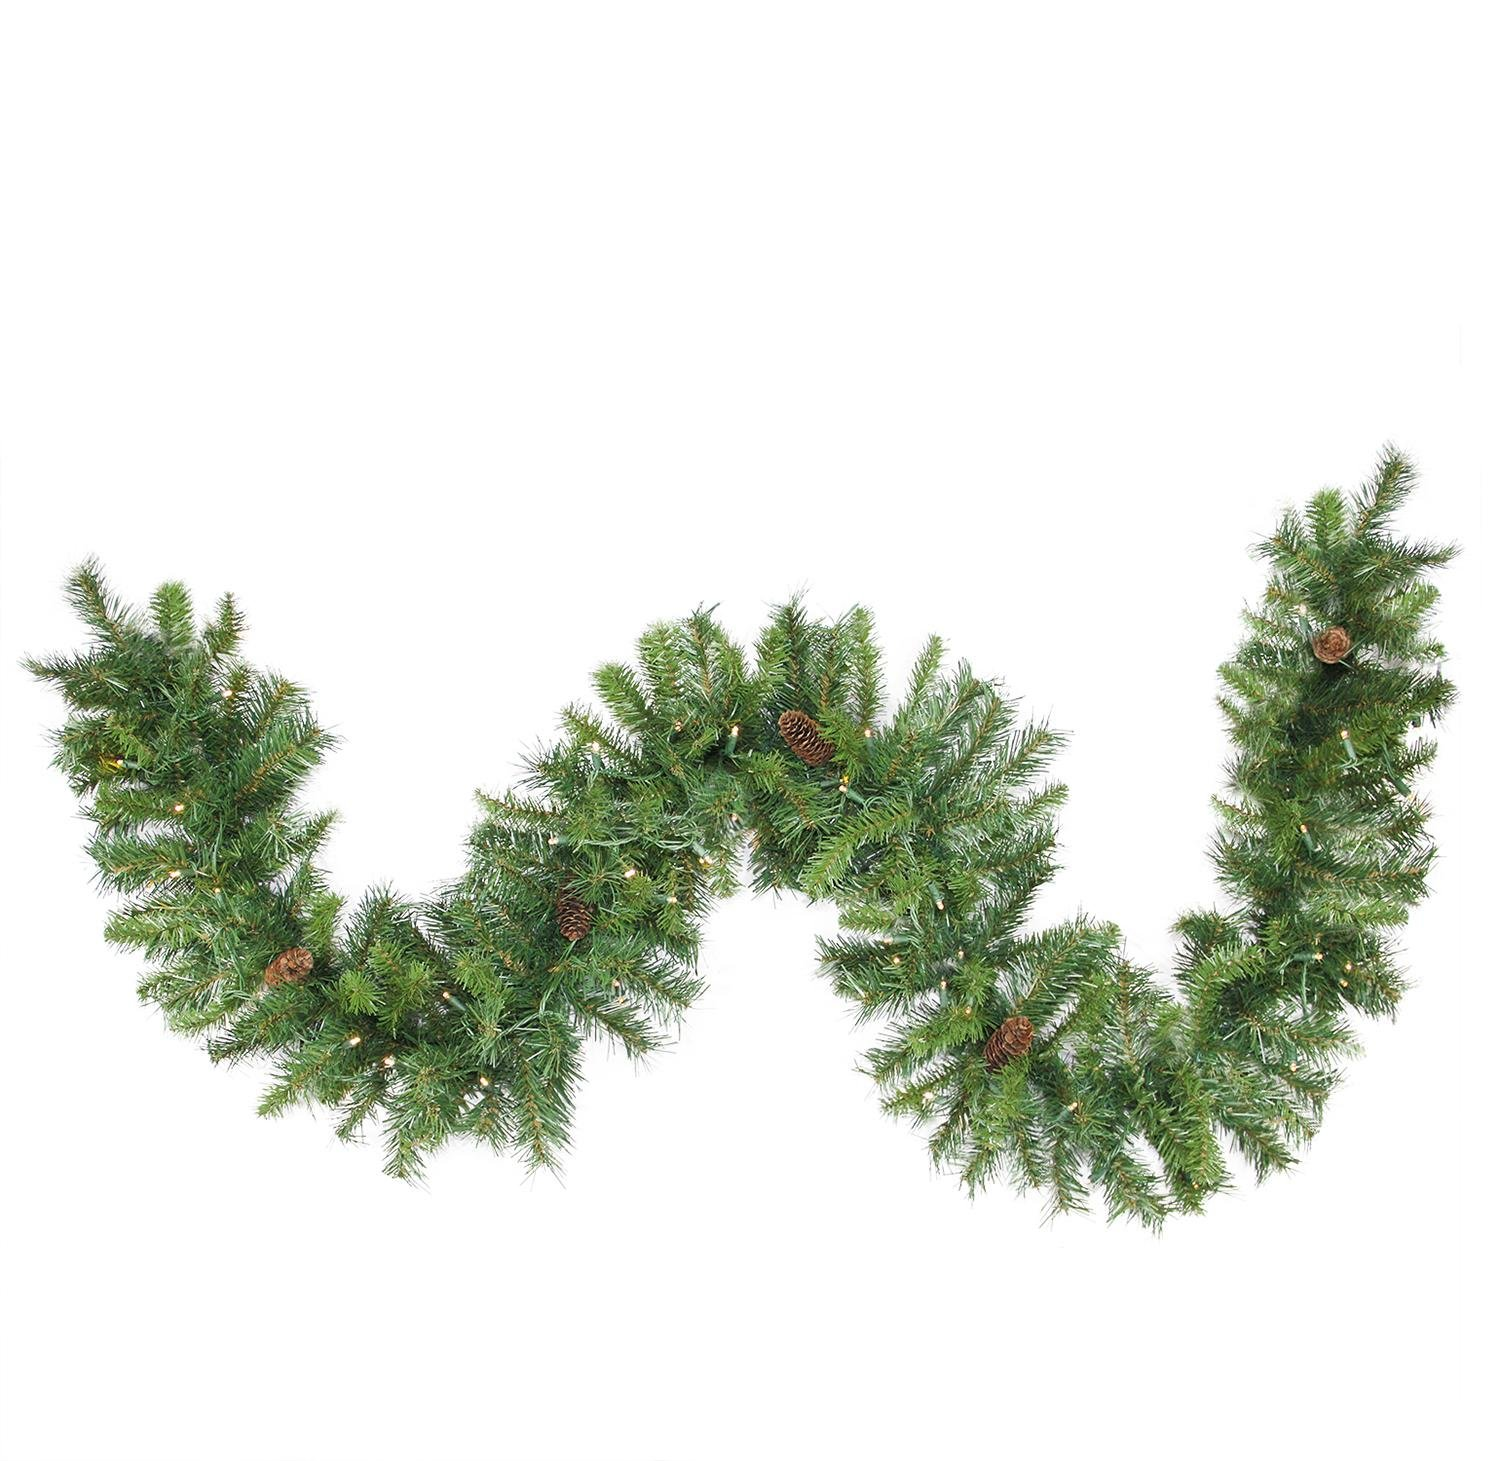 Northlight Pre-Lit Dakota Commercial Artificial Christmas Garland, 50' x 12'', Green by Northlight (Image #1)